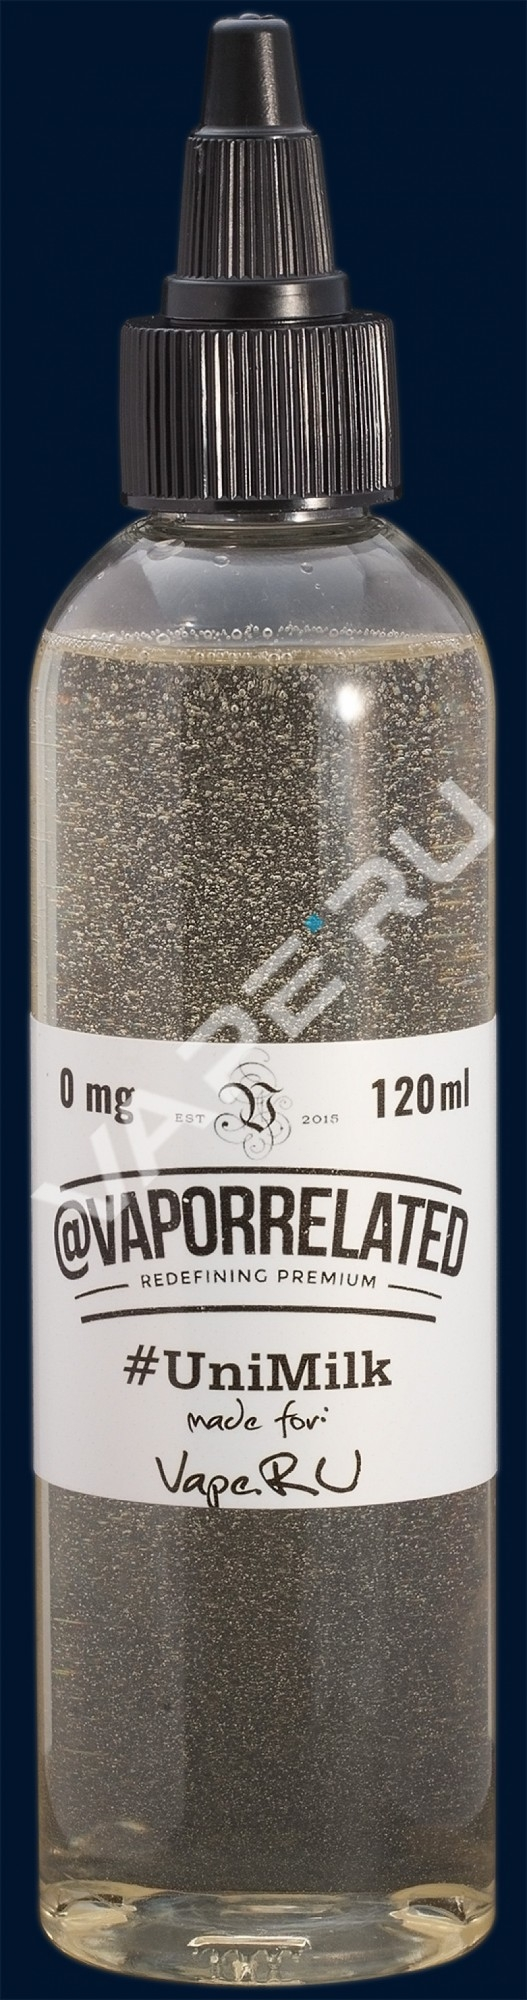 Vapor Related, UniMilk, 120ml